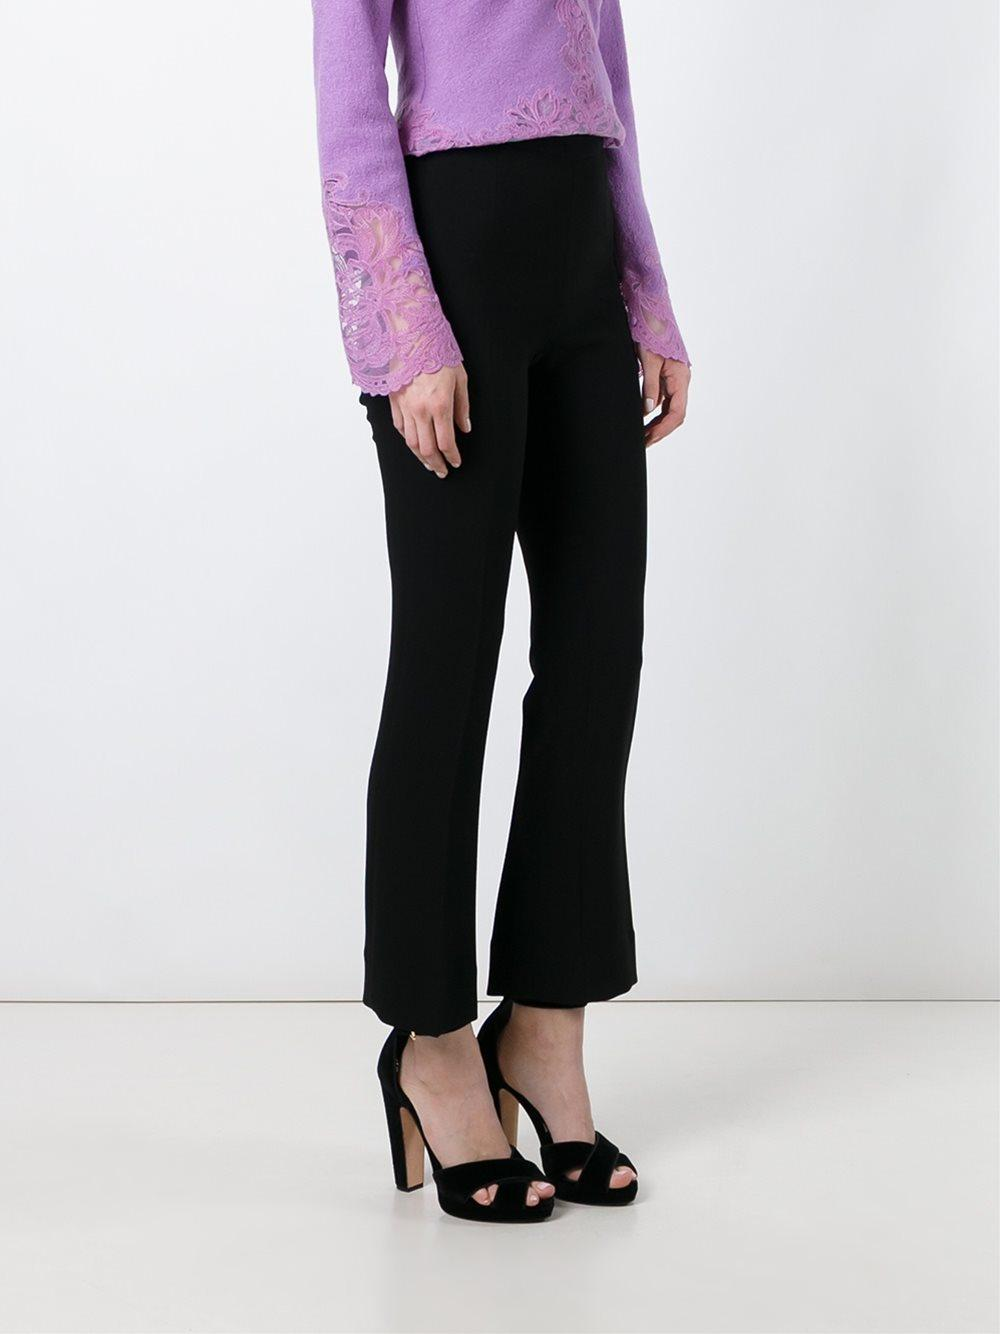 Black Fit Lyst In Trousers Slim Ermanno Kick Scervino Flare aHqzOS